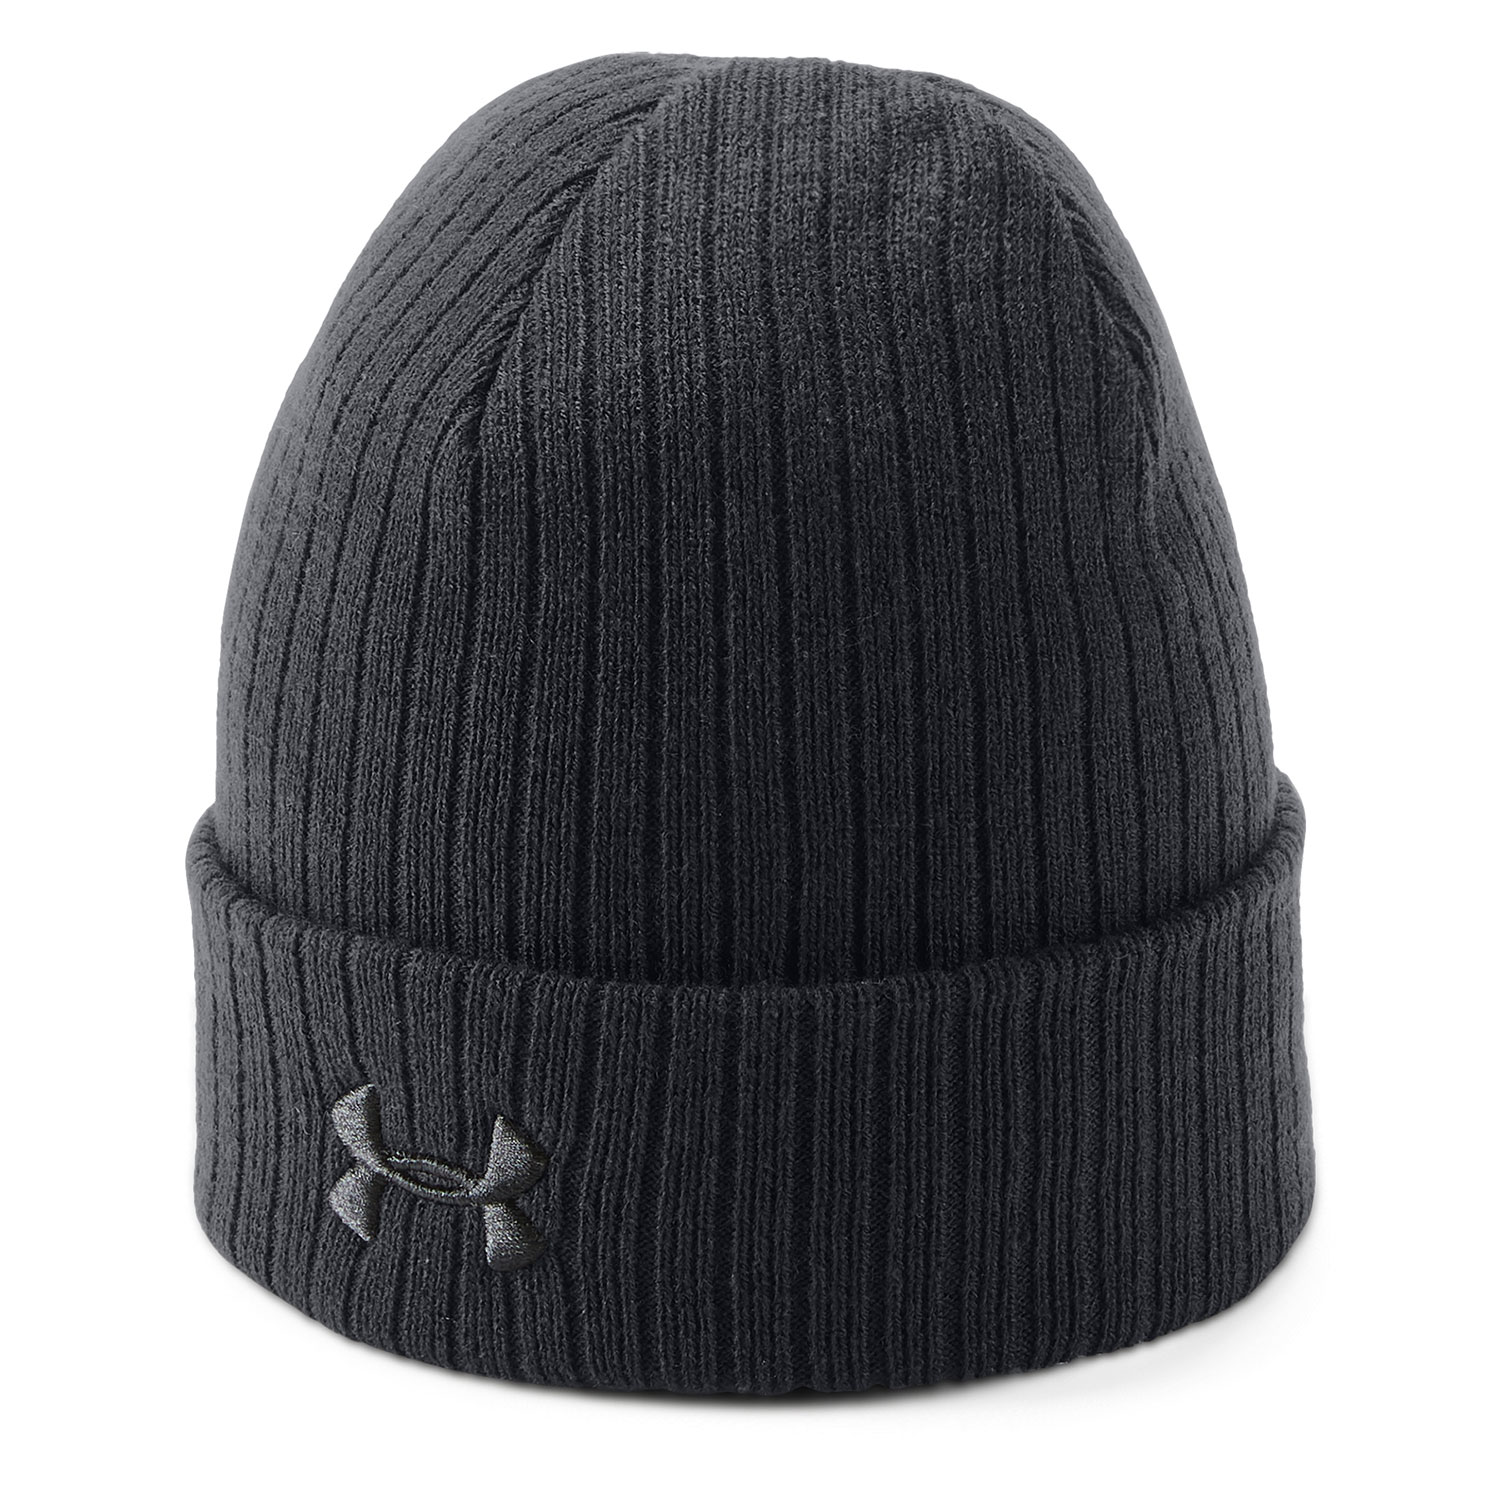 Under Armour Tactical Stealth 2.0 Beanie